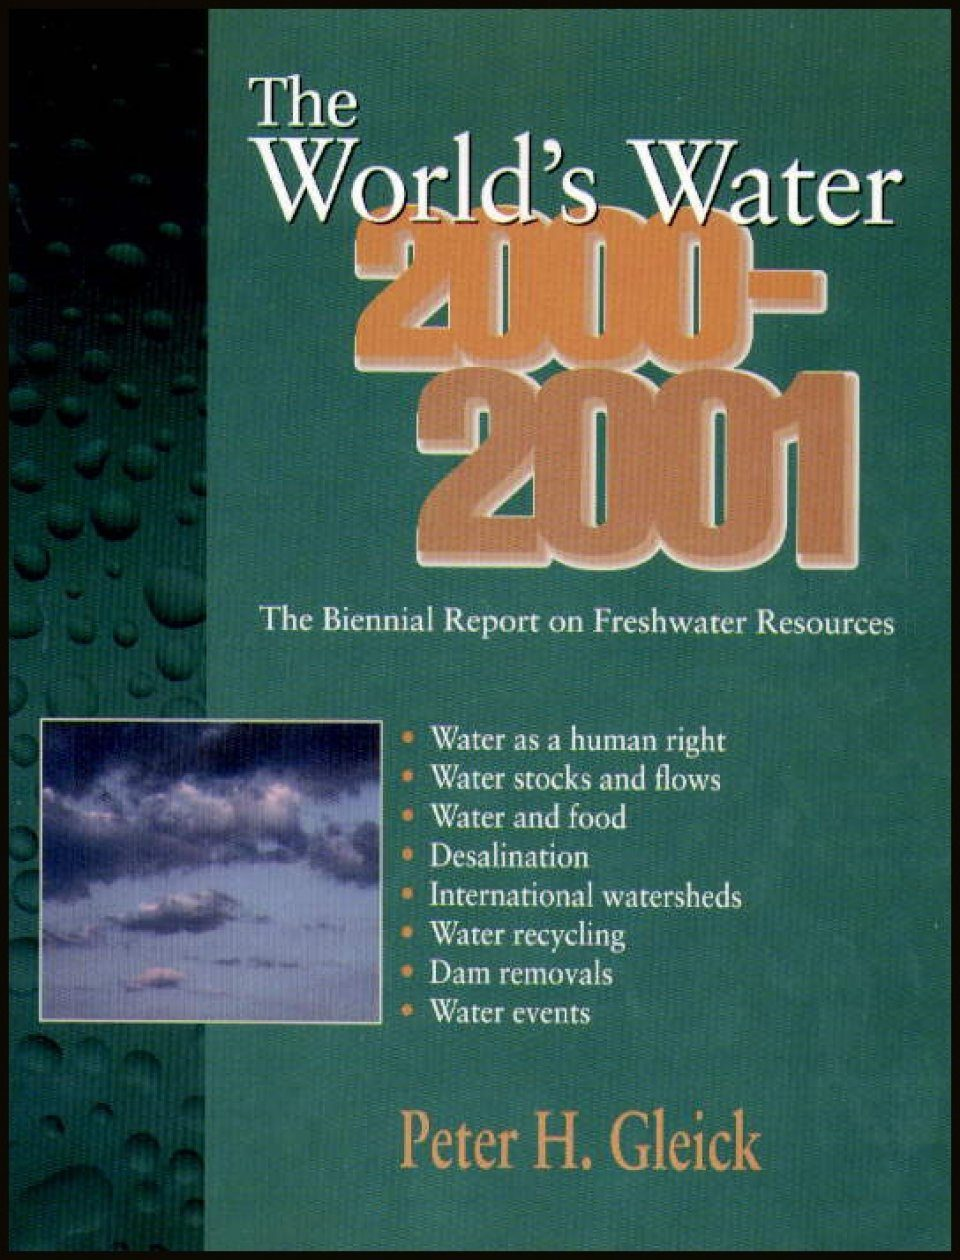 The World's Water 2000-2001